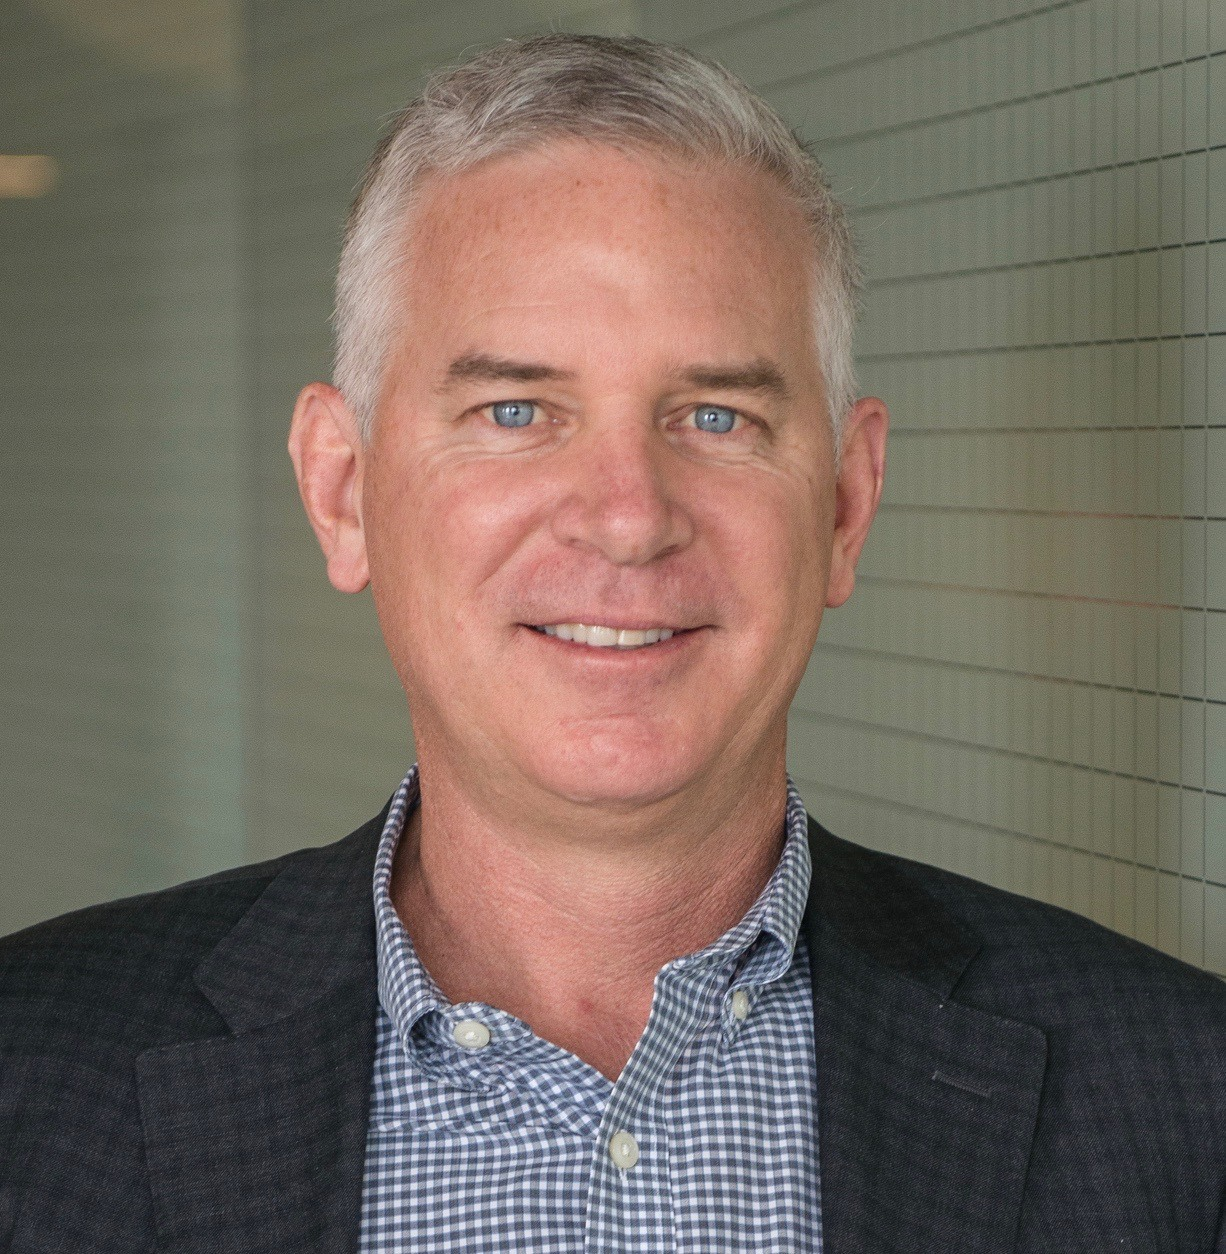 Xealth's CEO Mike McSherry Talks Preparing for the Digital Health Avalanche